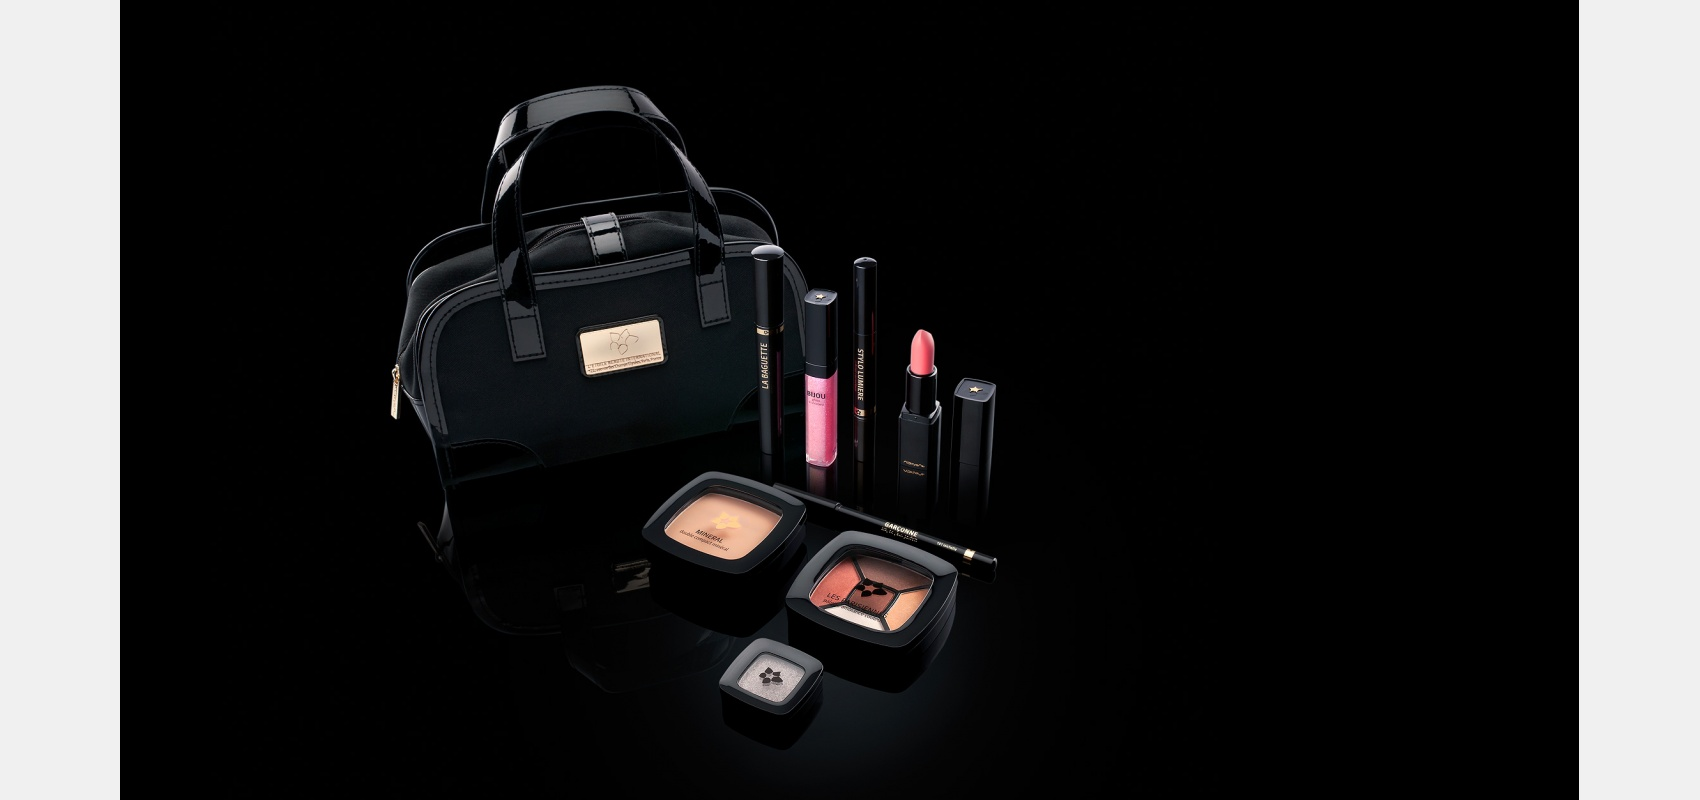 Product photography. Cosmetics/L'etoile Beaute International/ cosmetics items/ on black.